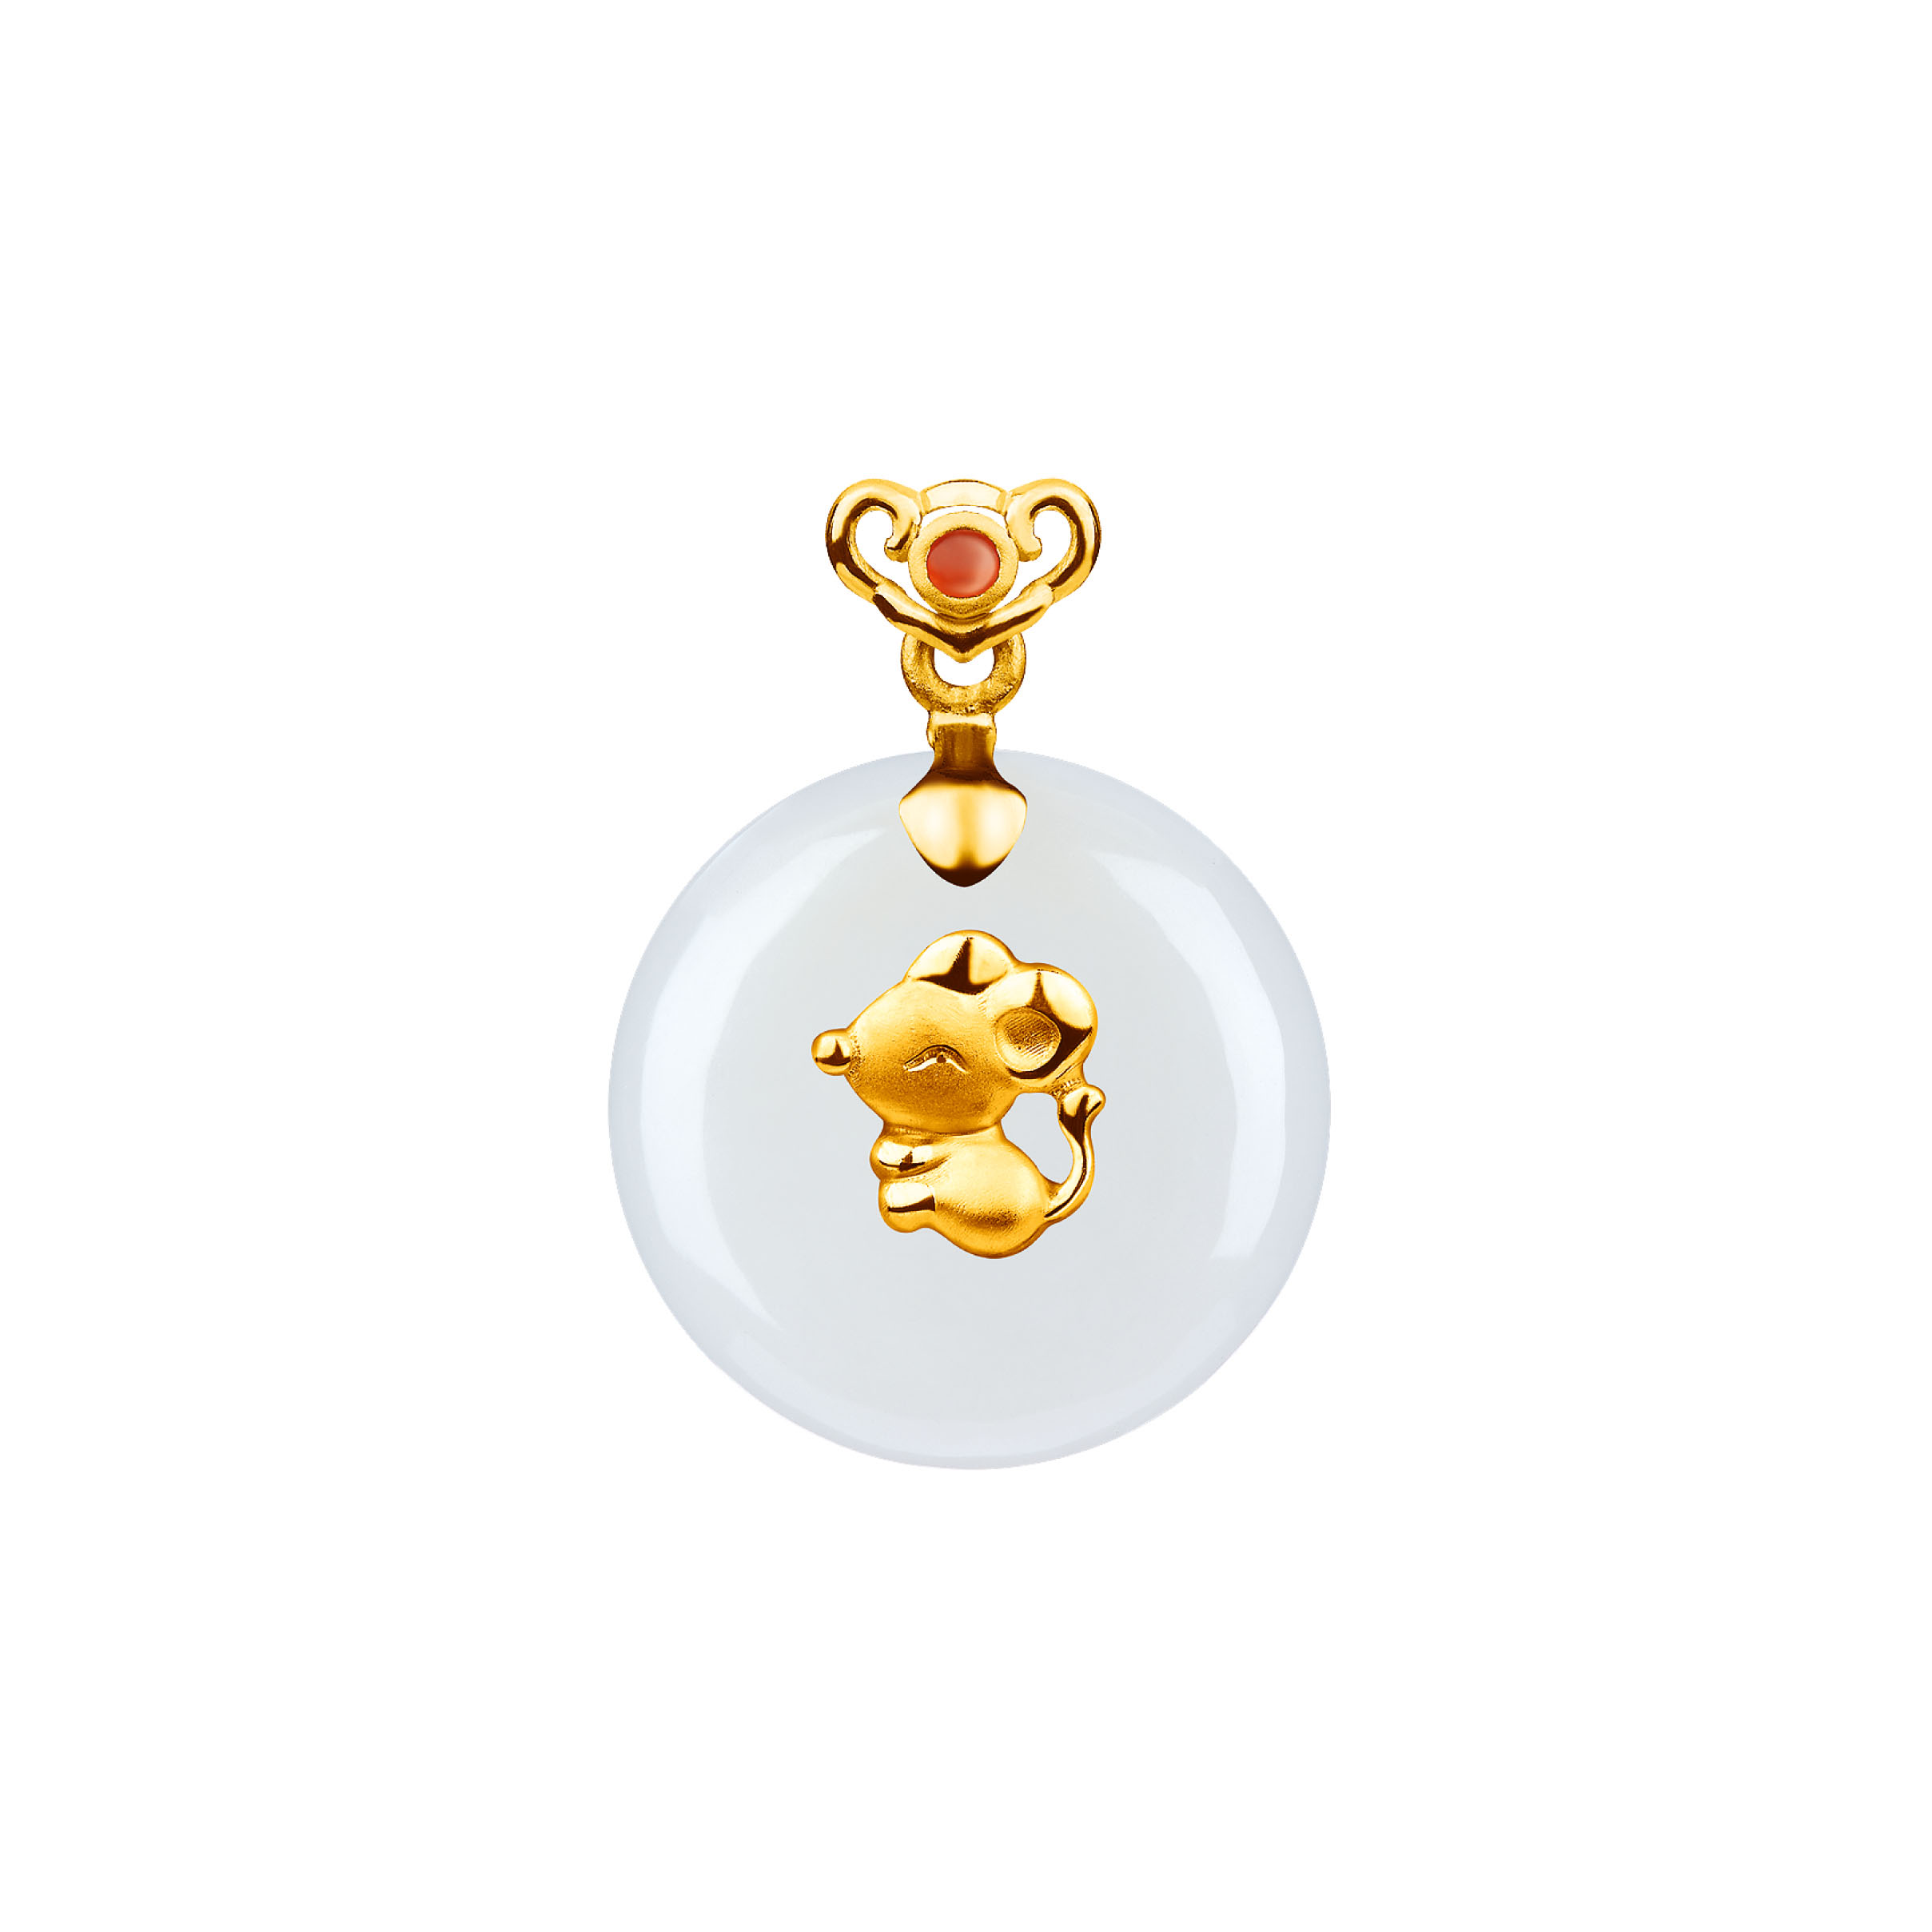 12 Chinese Zodiac Gold Pendant with Nephrite-Rat